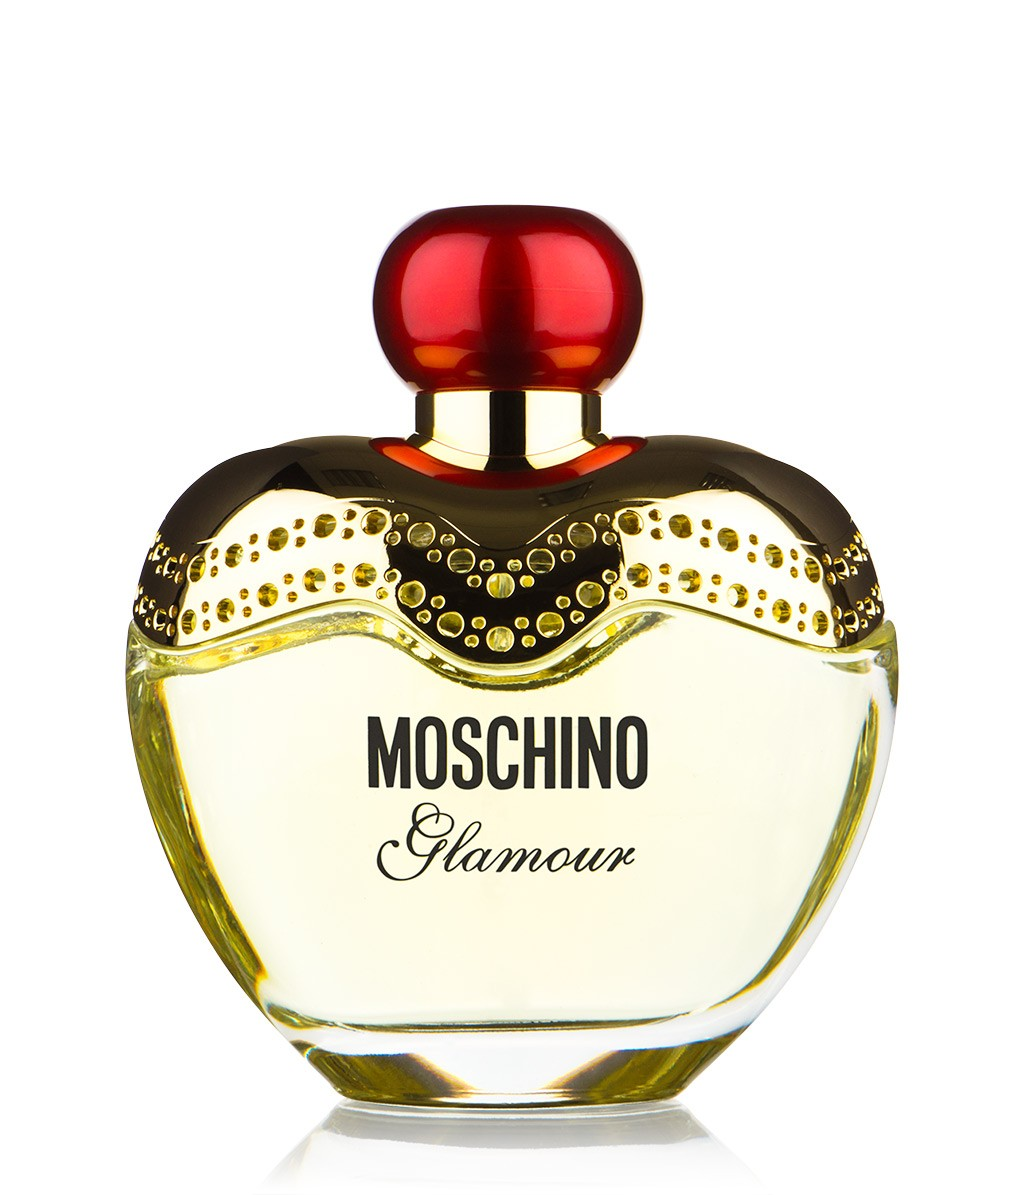 Nuoc Hoa Mini nu Moschino Glamour chinh hang